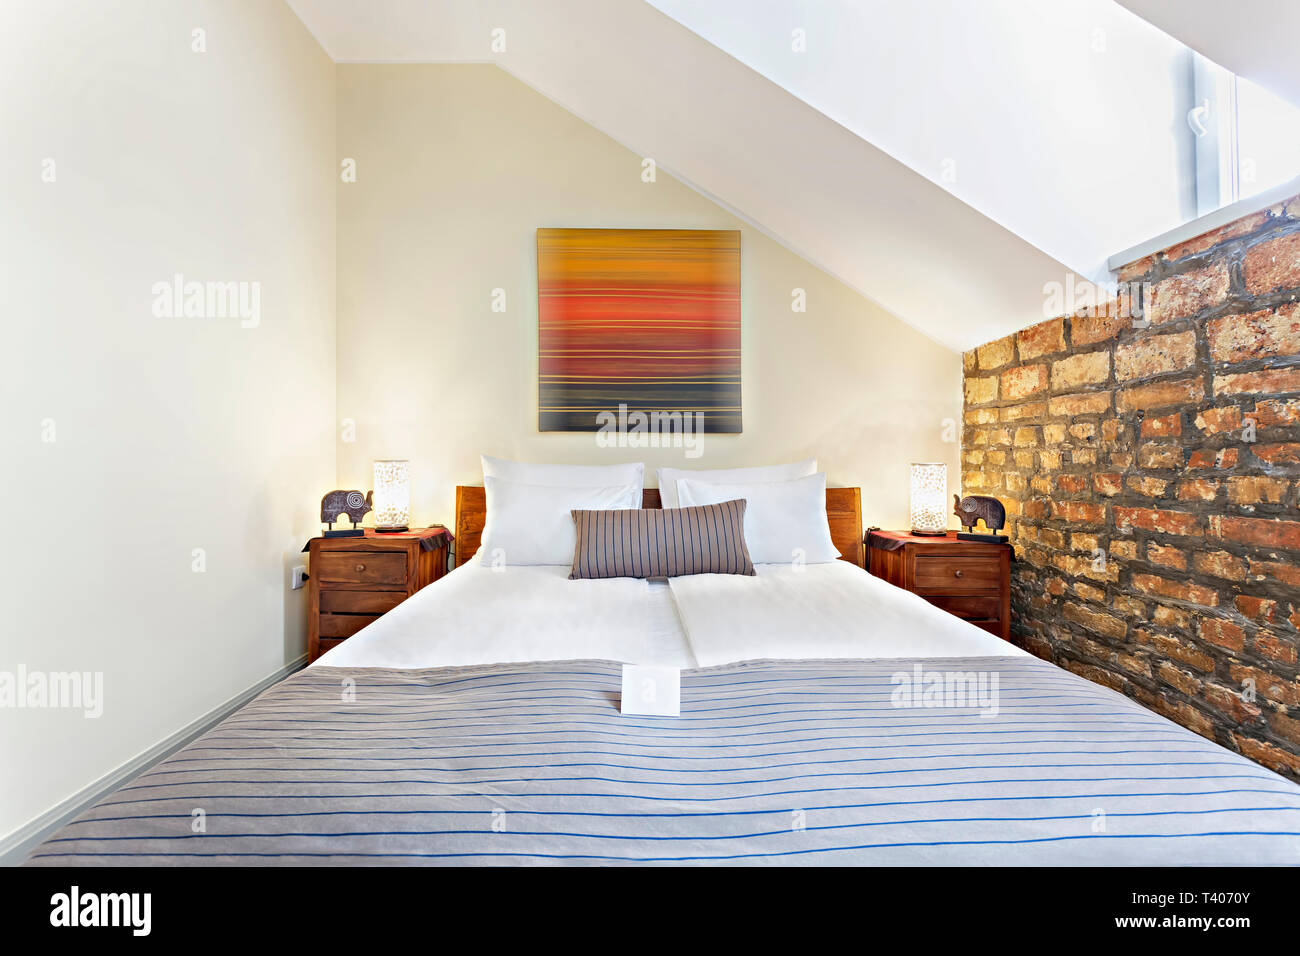 Bedroom interior in luxury loft, attic, apartment with roof windows - Hotel room - vacation concept background Stock Photo